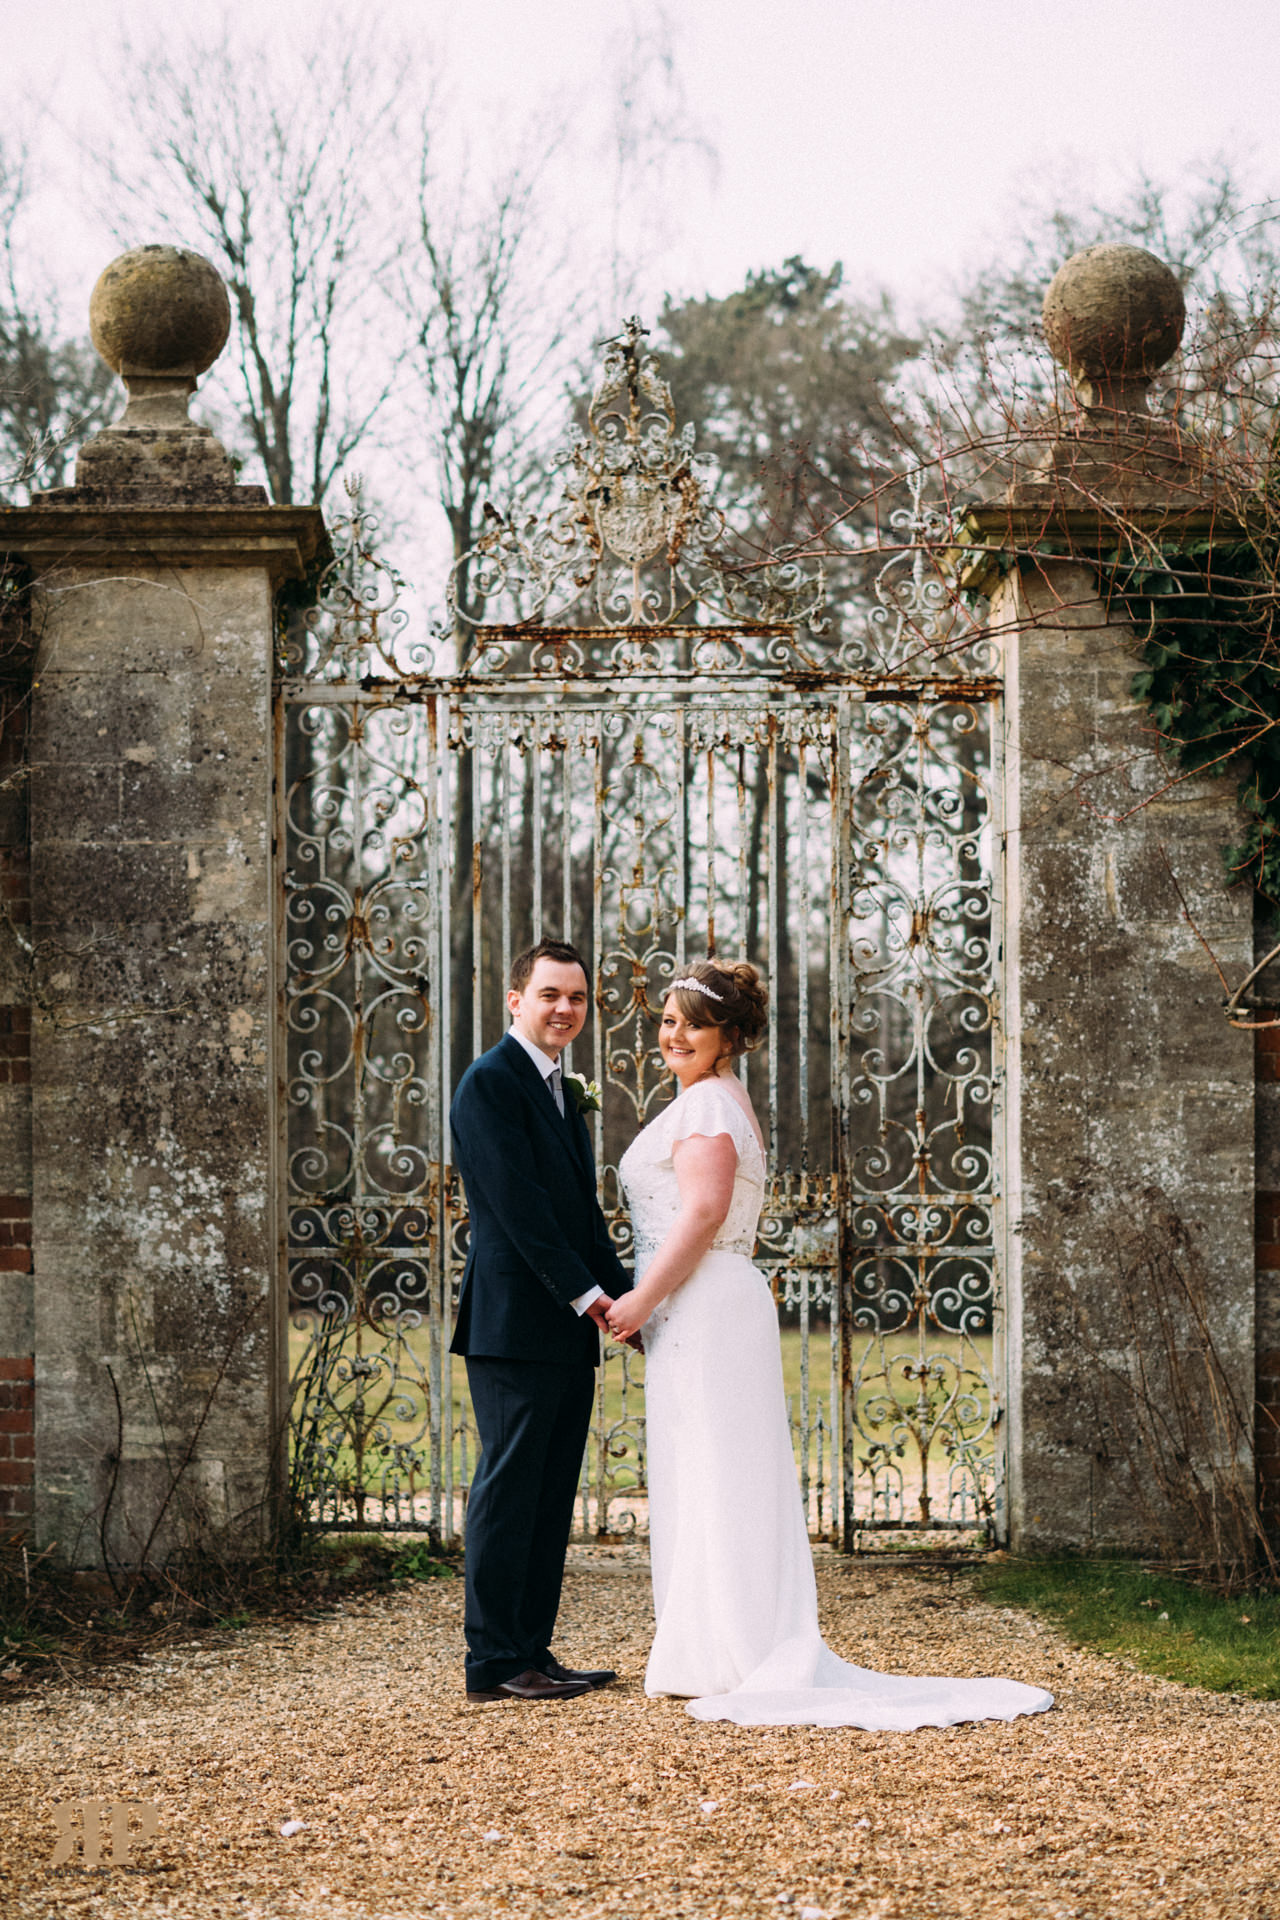 Louise and Adam's wedding at Easthampstead Park Bracknall on 12 March 2016.